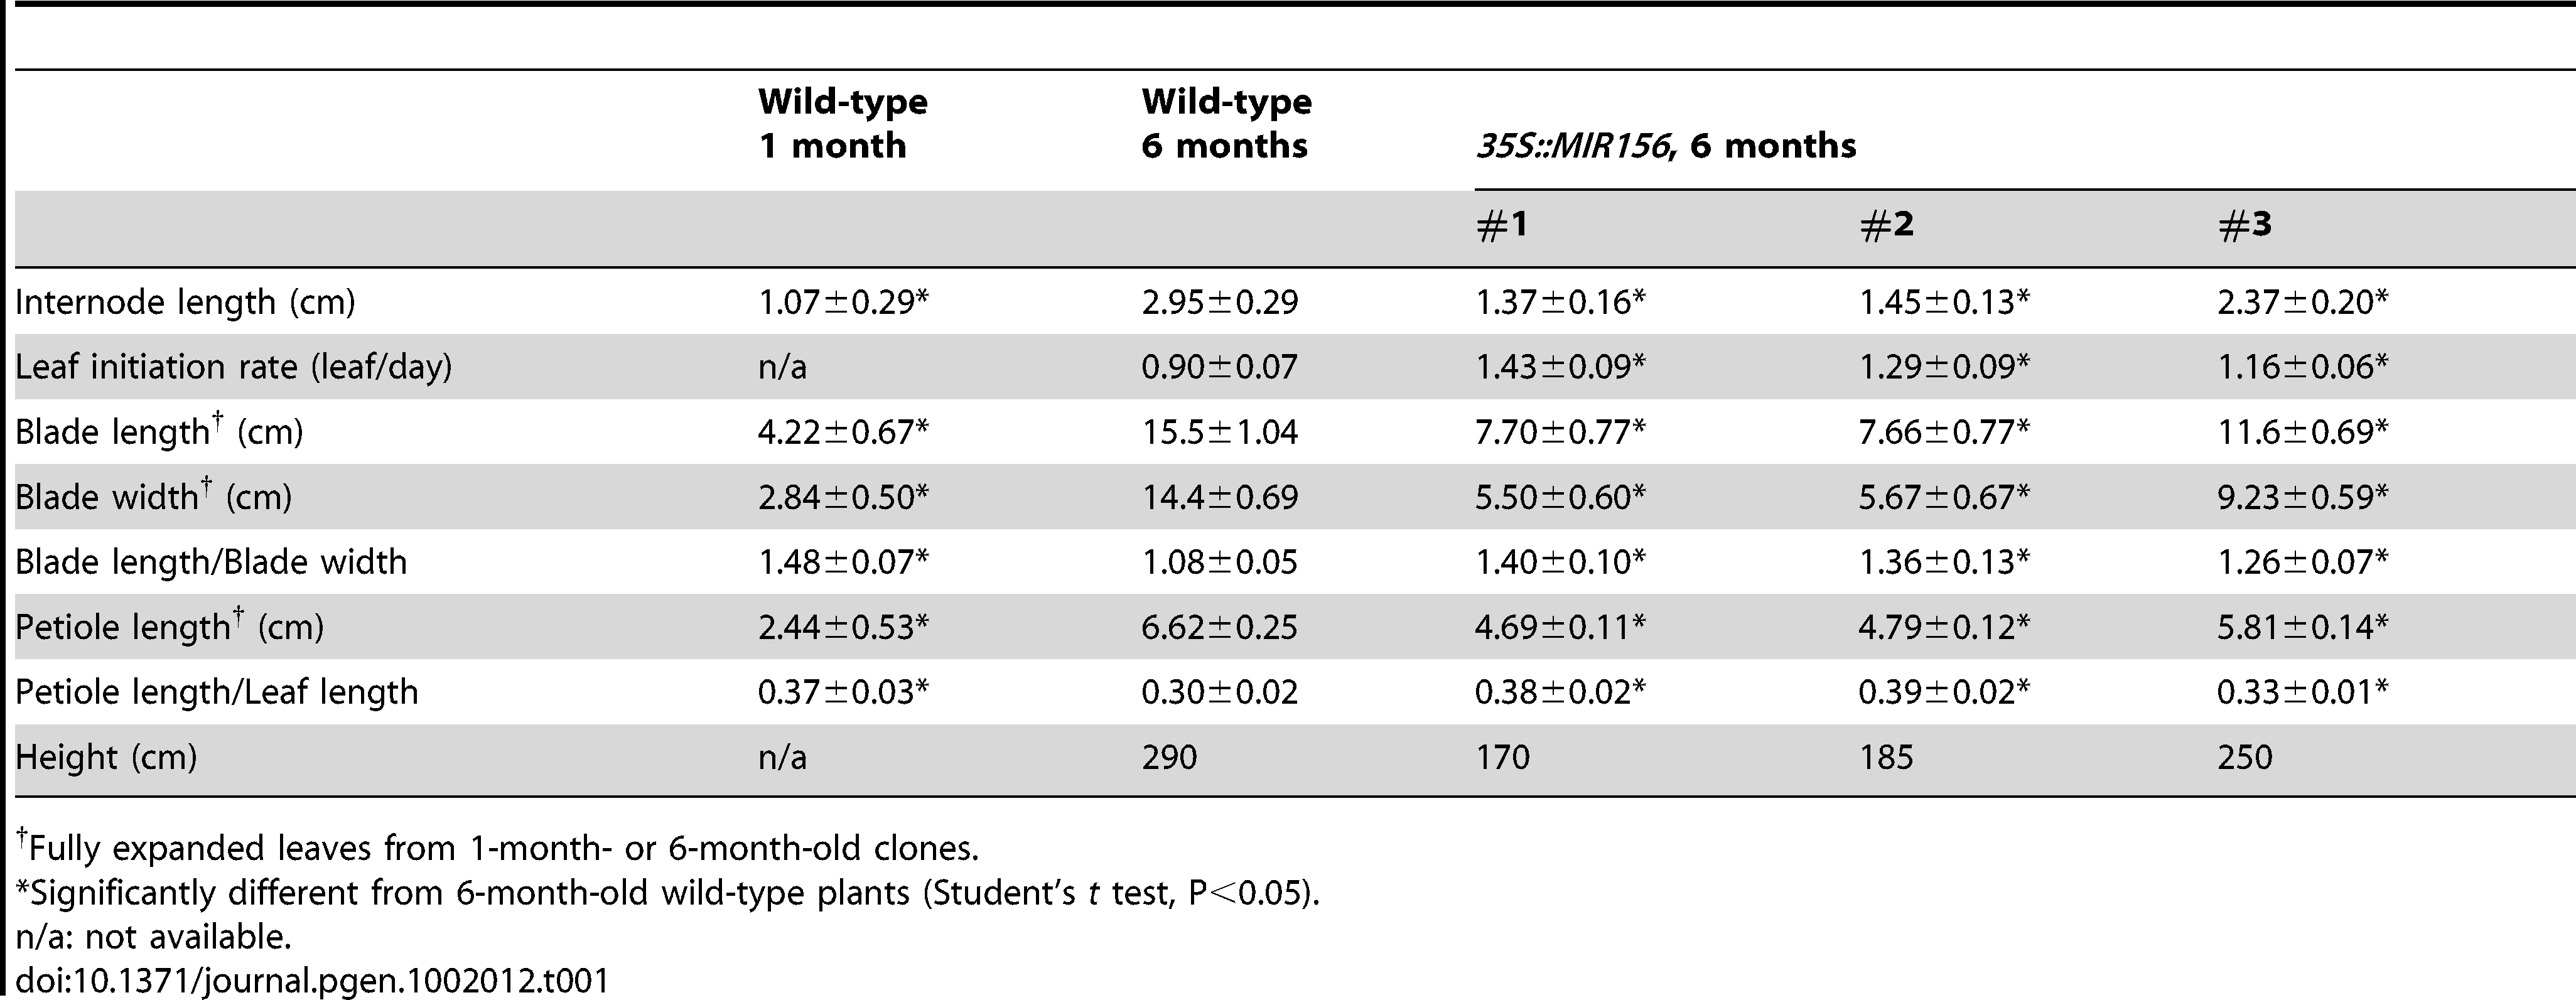 Growth characteristics of <i>35S::MIR156 P. x canadensis</i> plants.